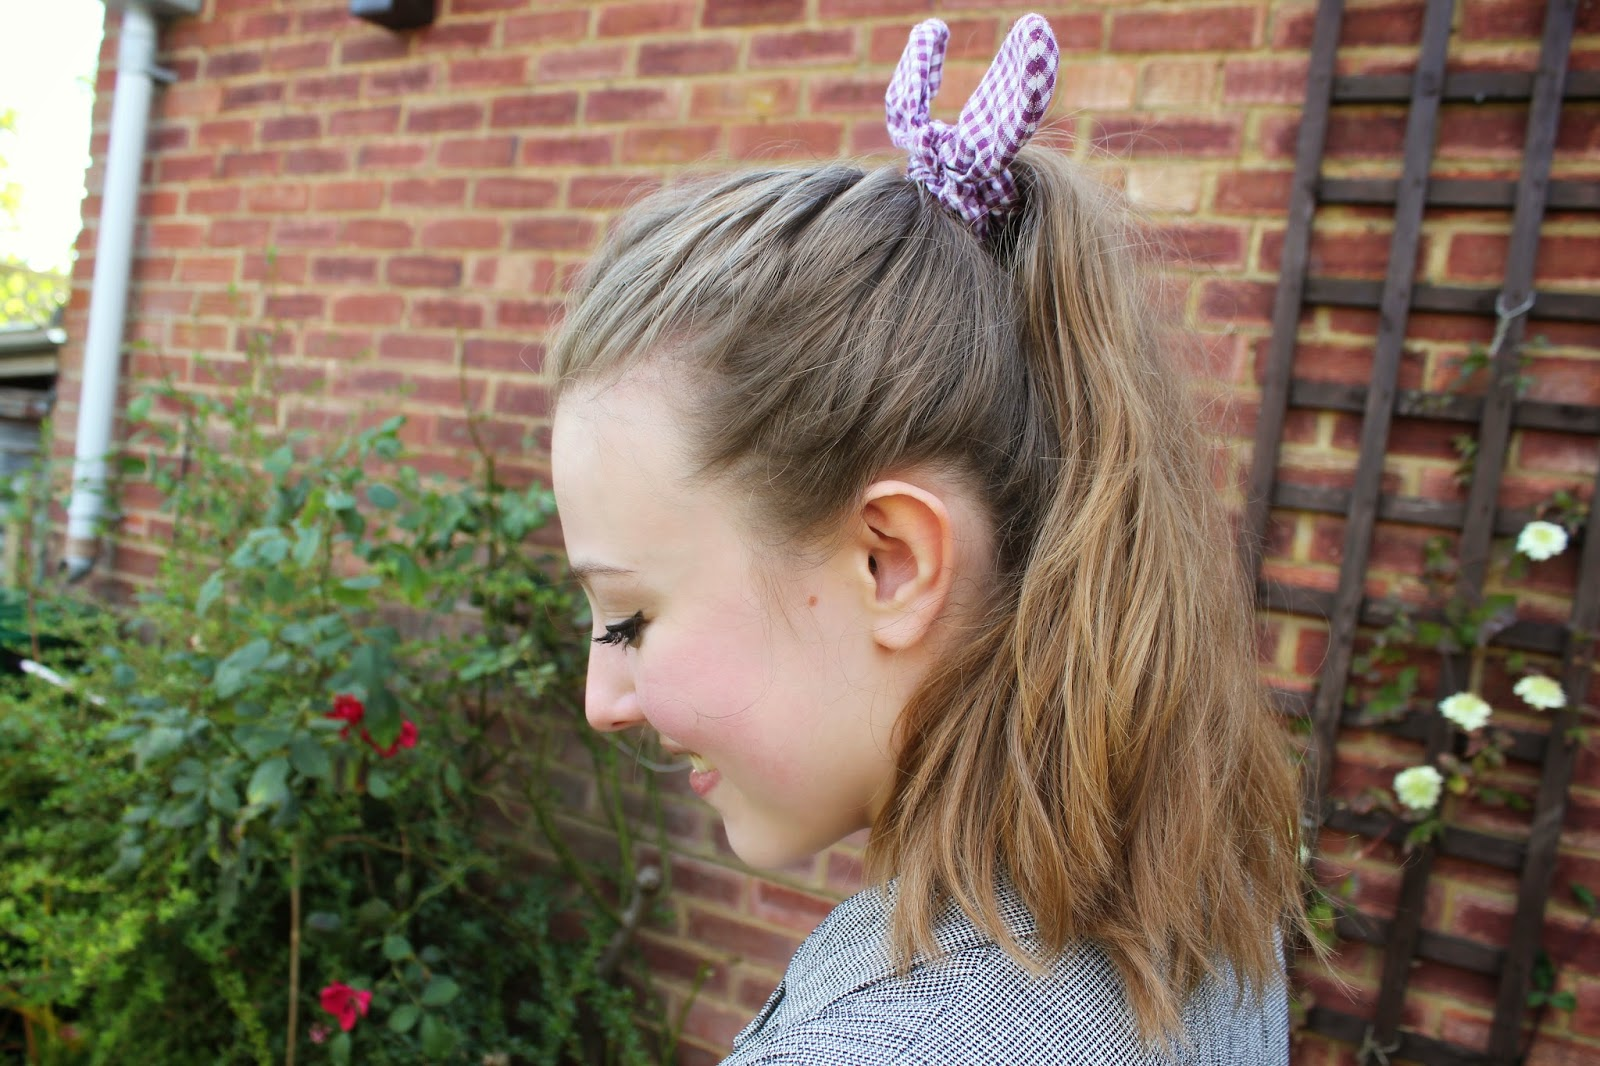 blogger-accessories-inspiration-fashion-scrunchie-hair-gingham-bow-camden